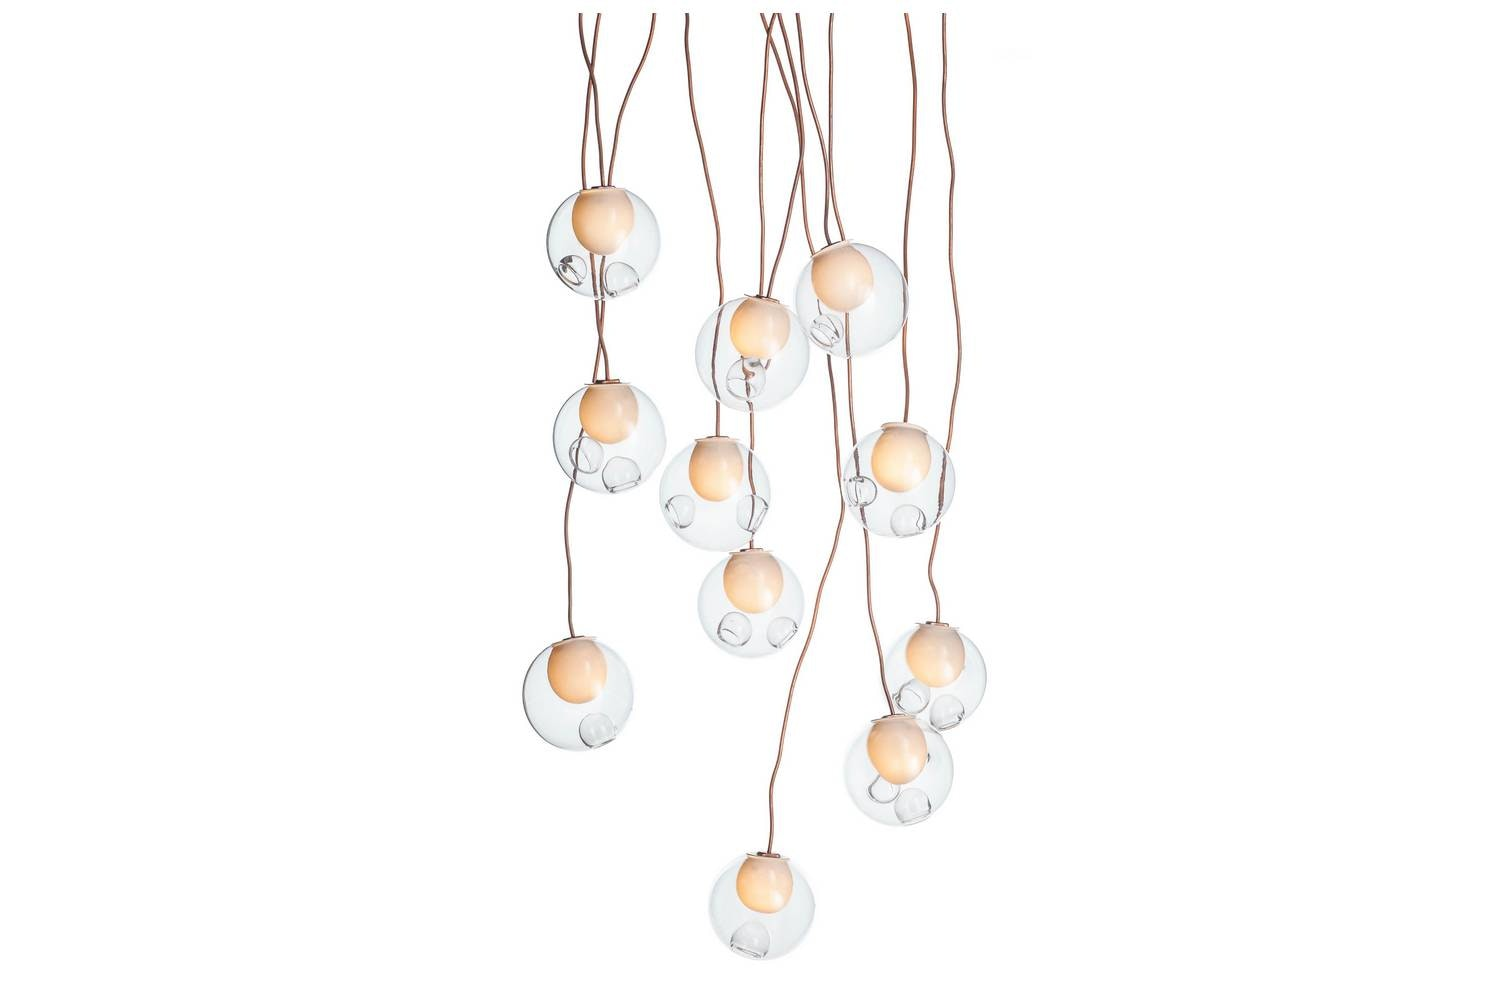 28.11 Copper Suspension Lamp by Omer Arbel for Bocci